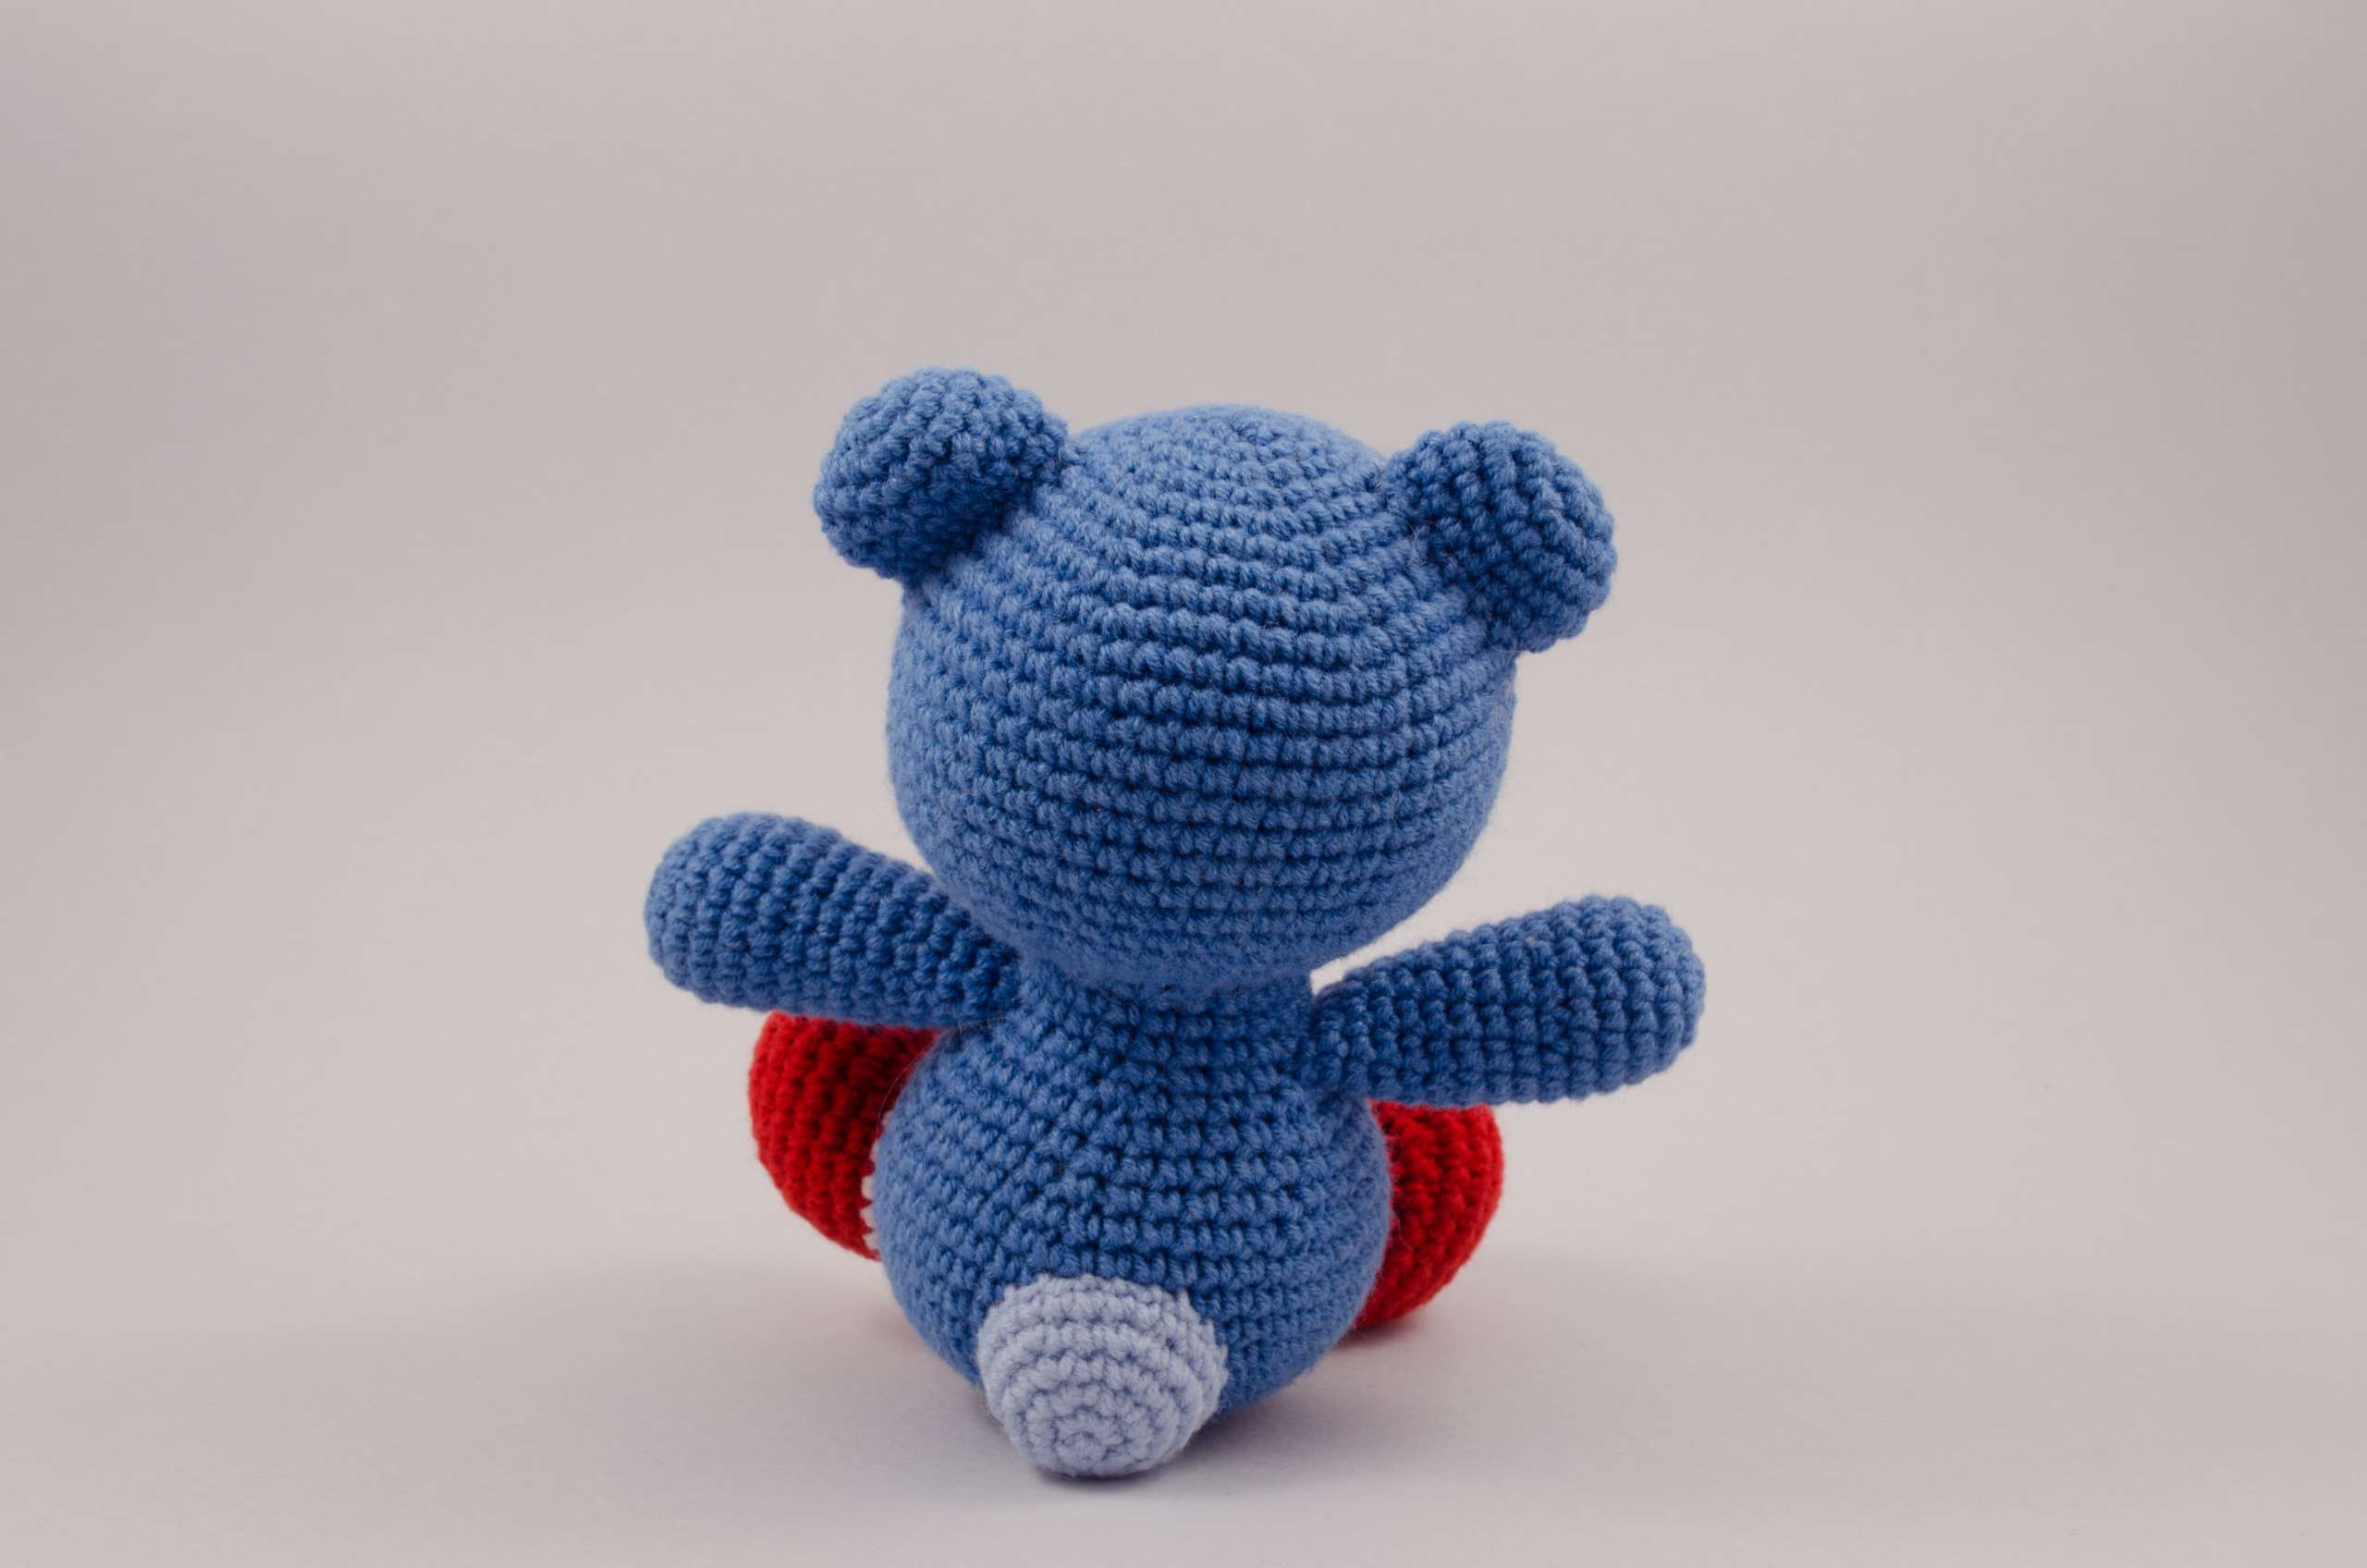 crochet teddy bear back view